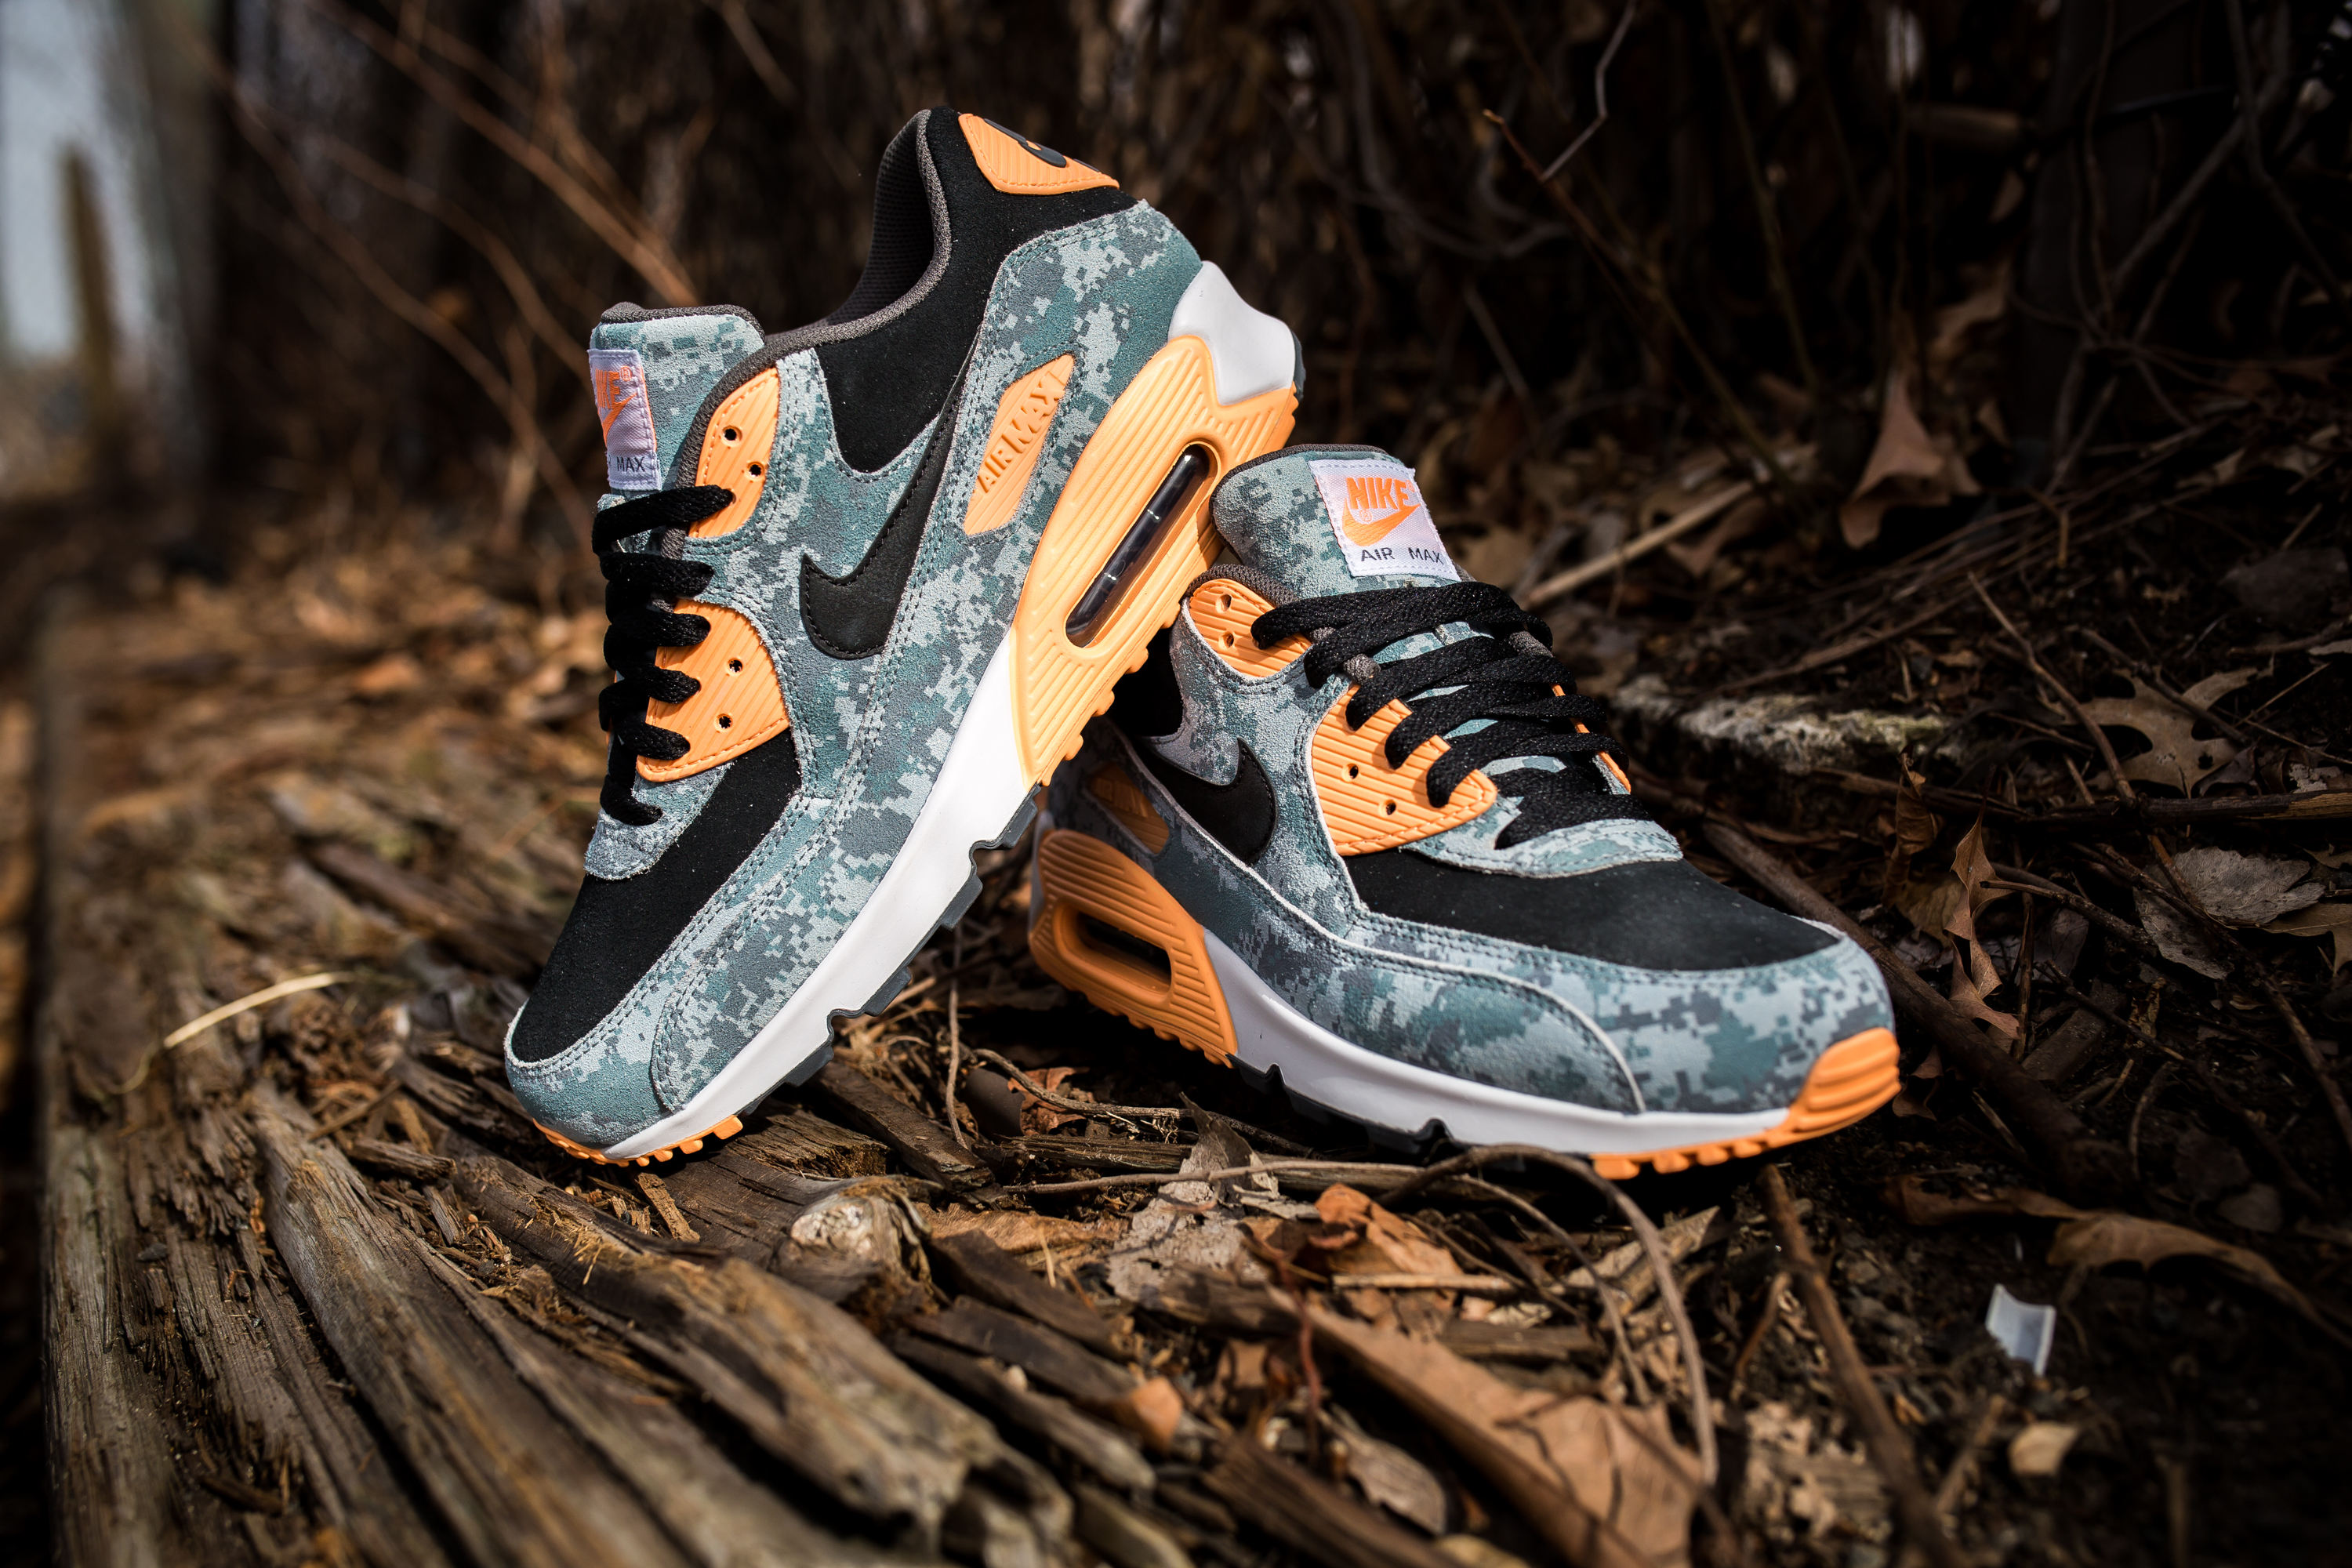 buy popular 80173 a3967 purchase nike herre air max 95 premium sko barok brun dragon rØd 78d8a  4e2af  coupon for discount nike air max 90 prm blu fox bl fox ozn bl mst bl